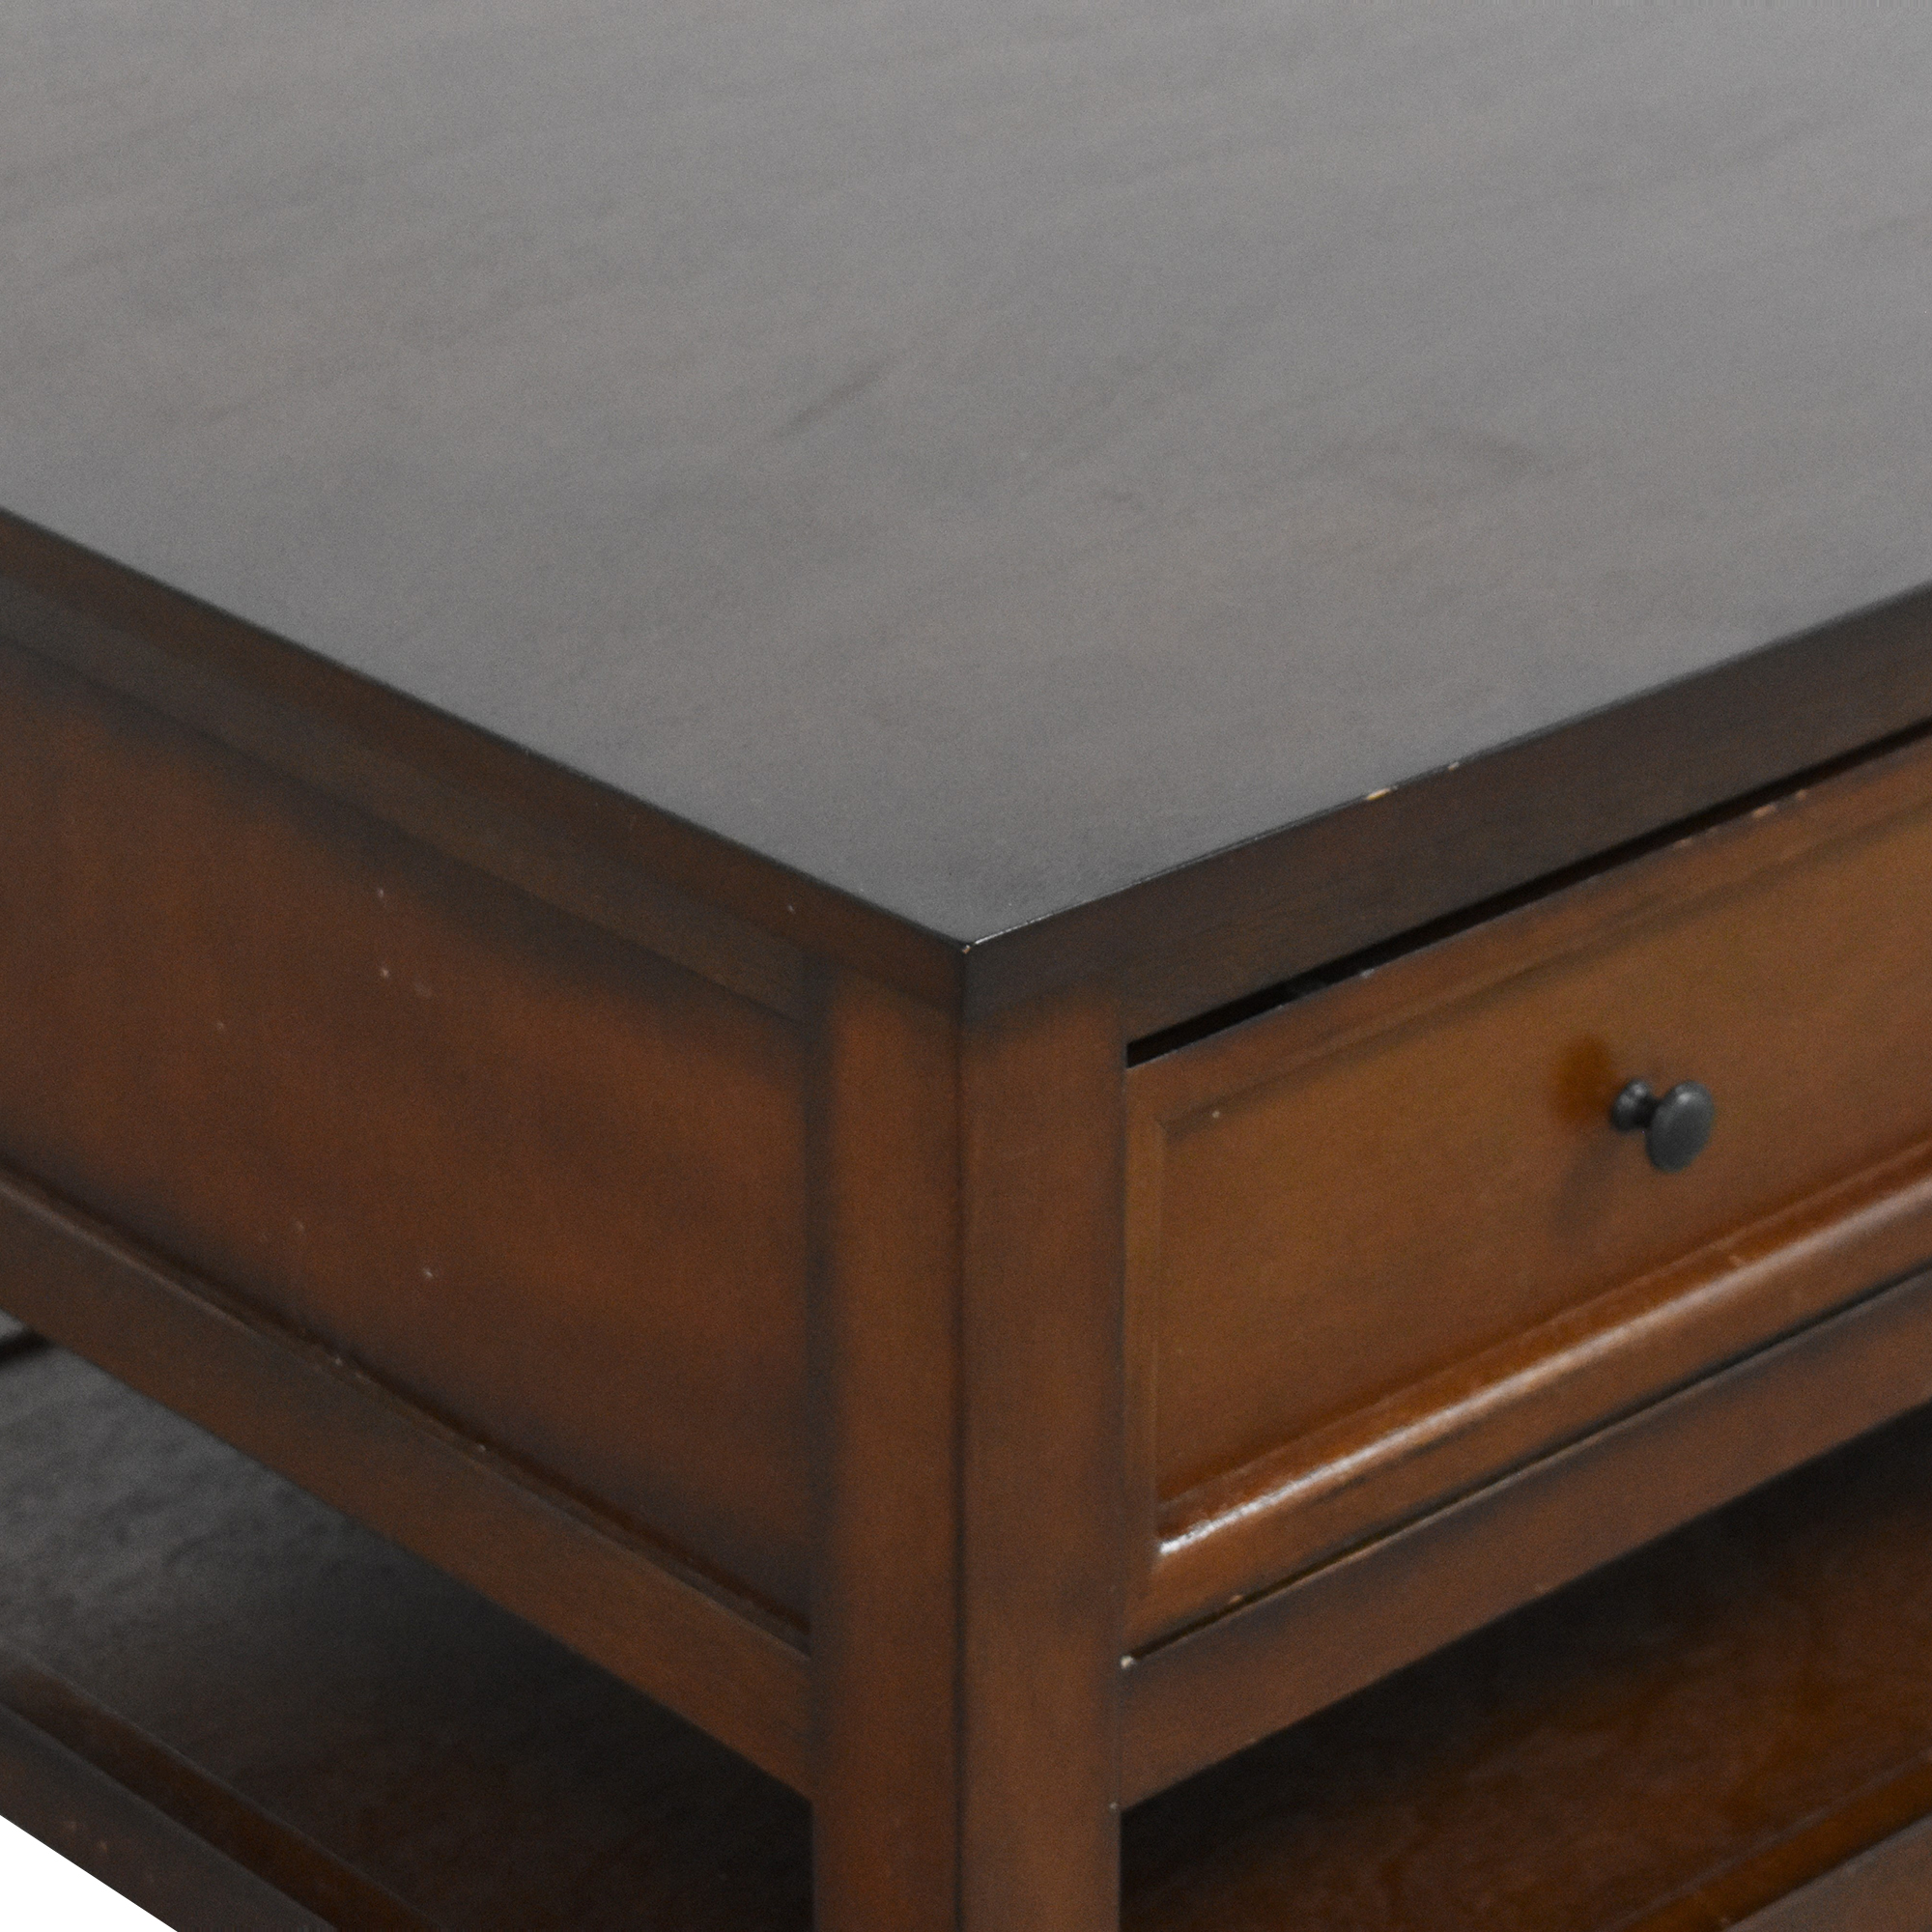 shop Pier 1 Pier 1 Storage Coffee Table online